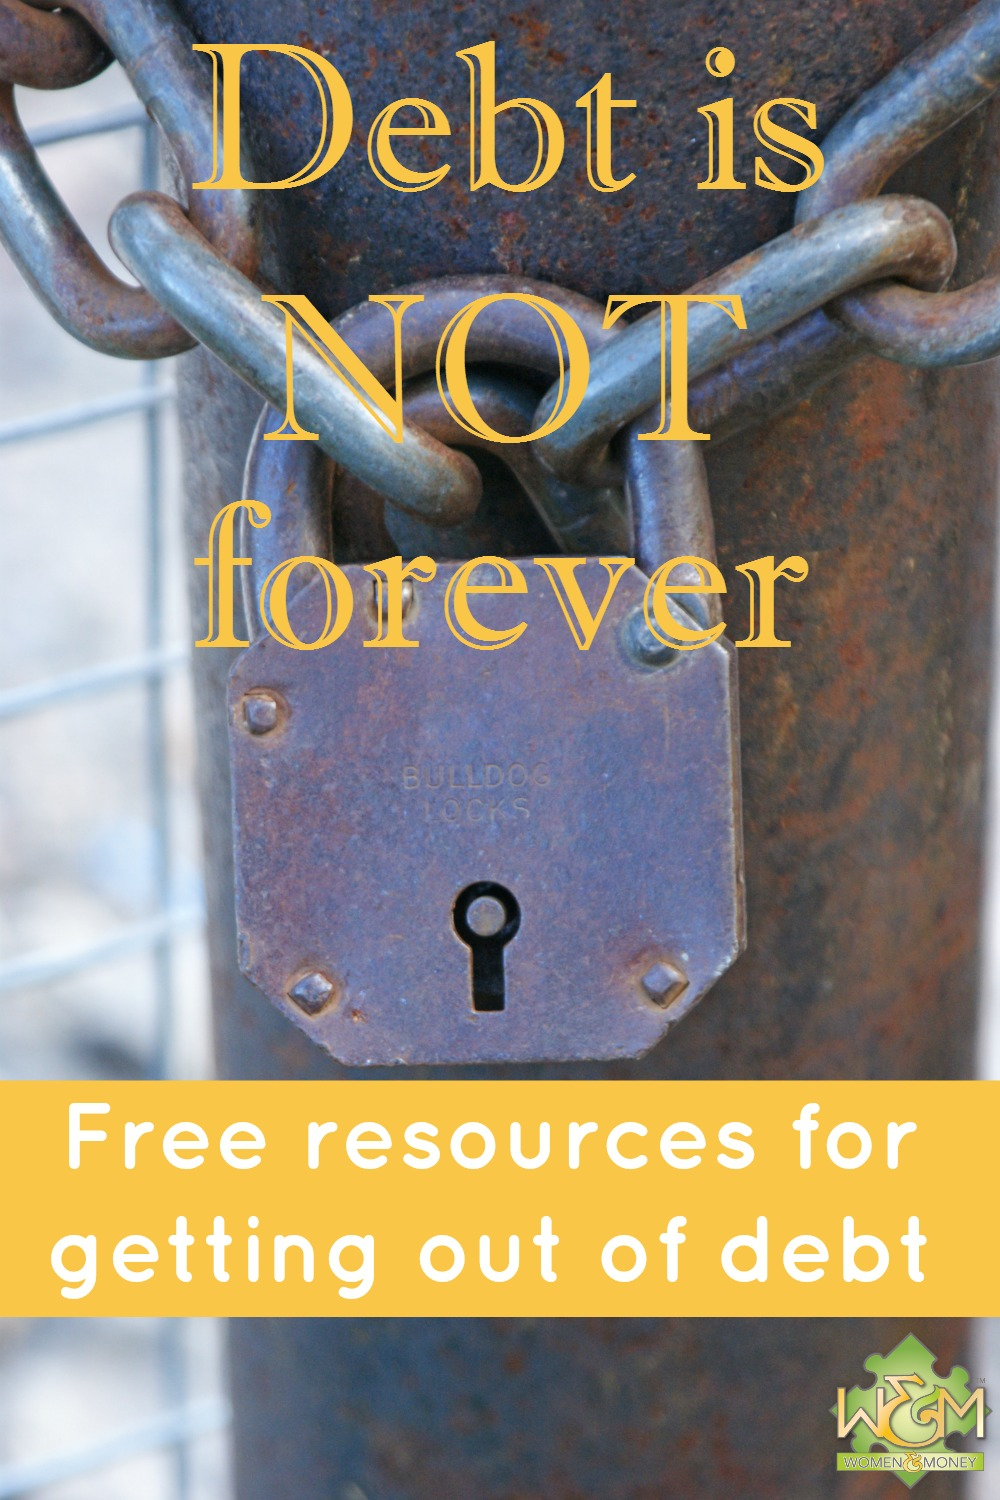 Debt is not forever! Here's some awesome free resources for getting out of debt